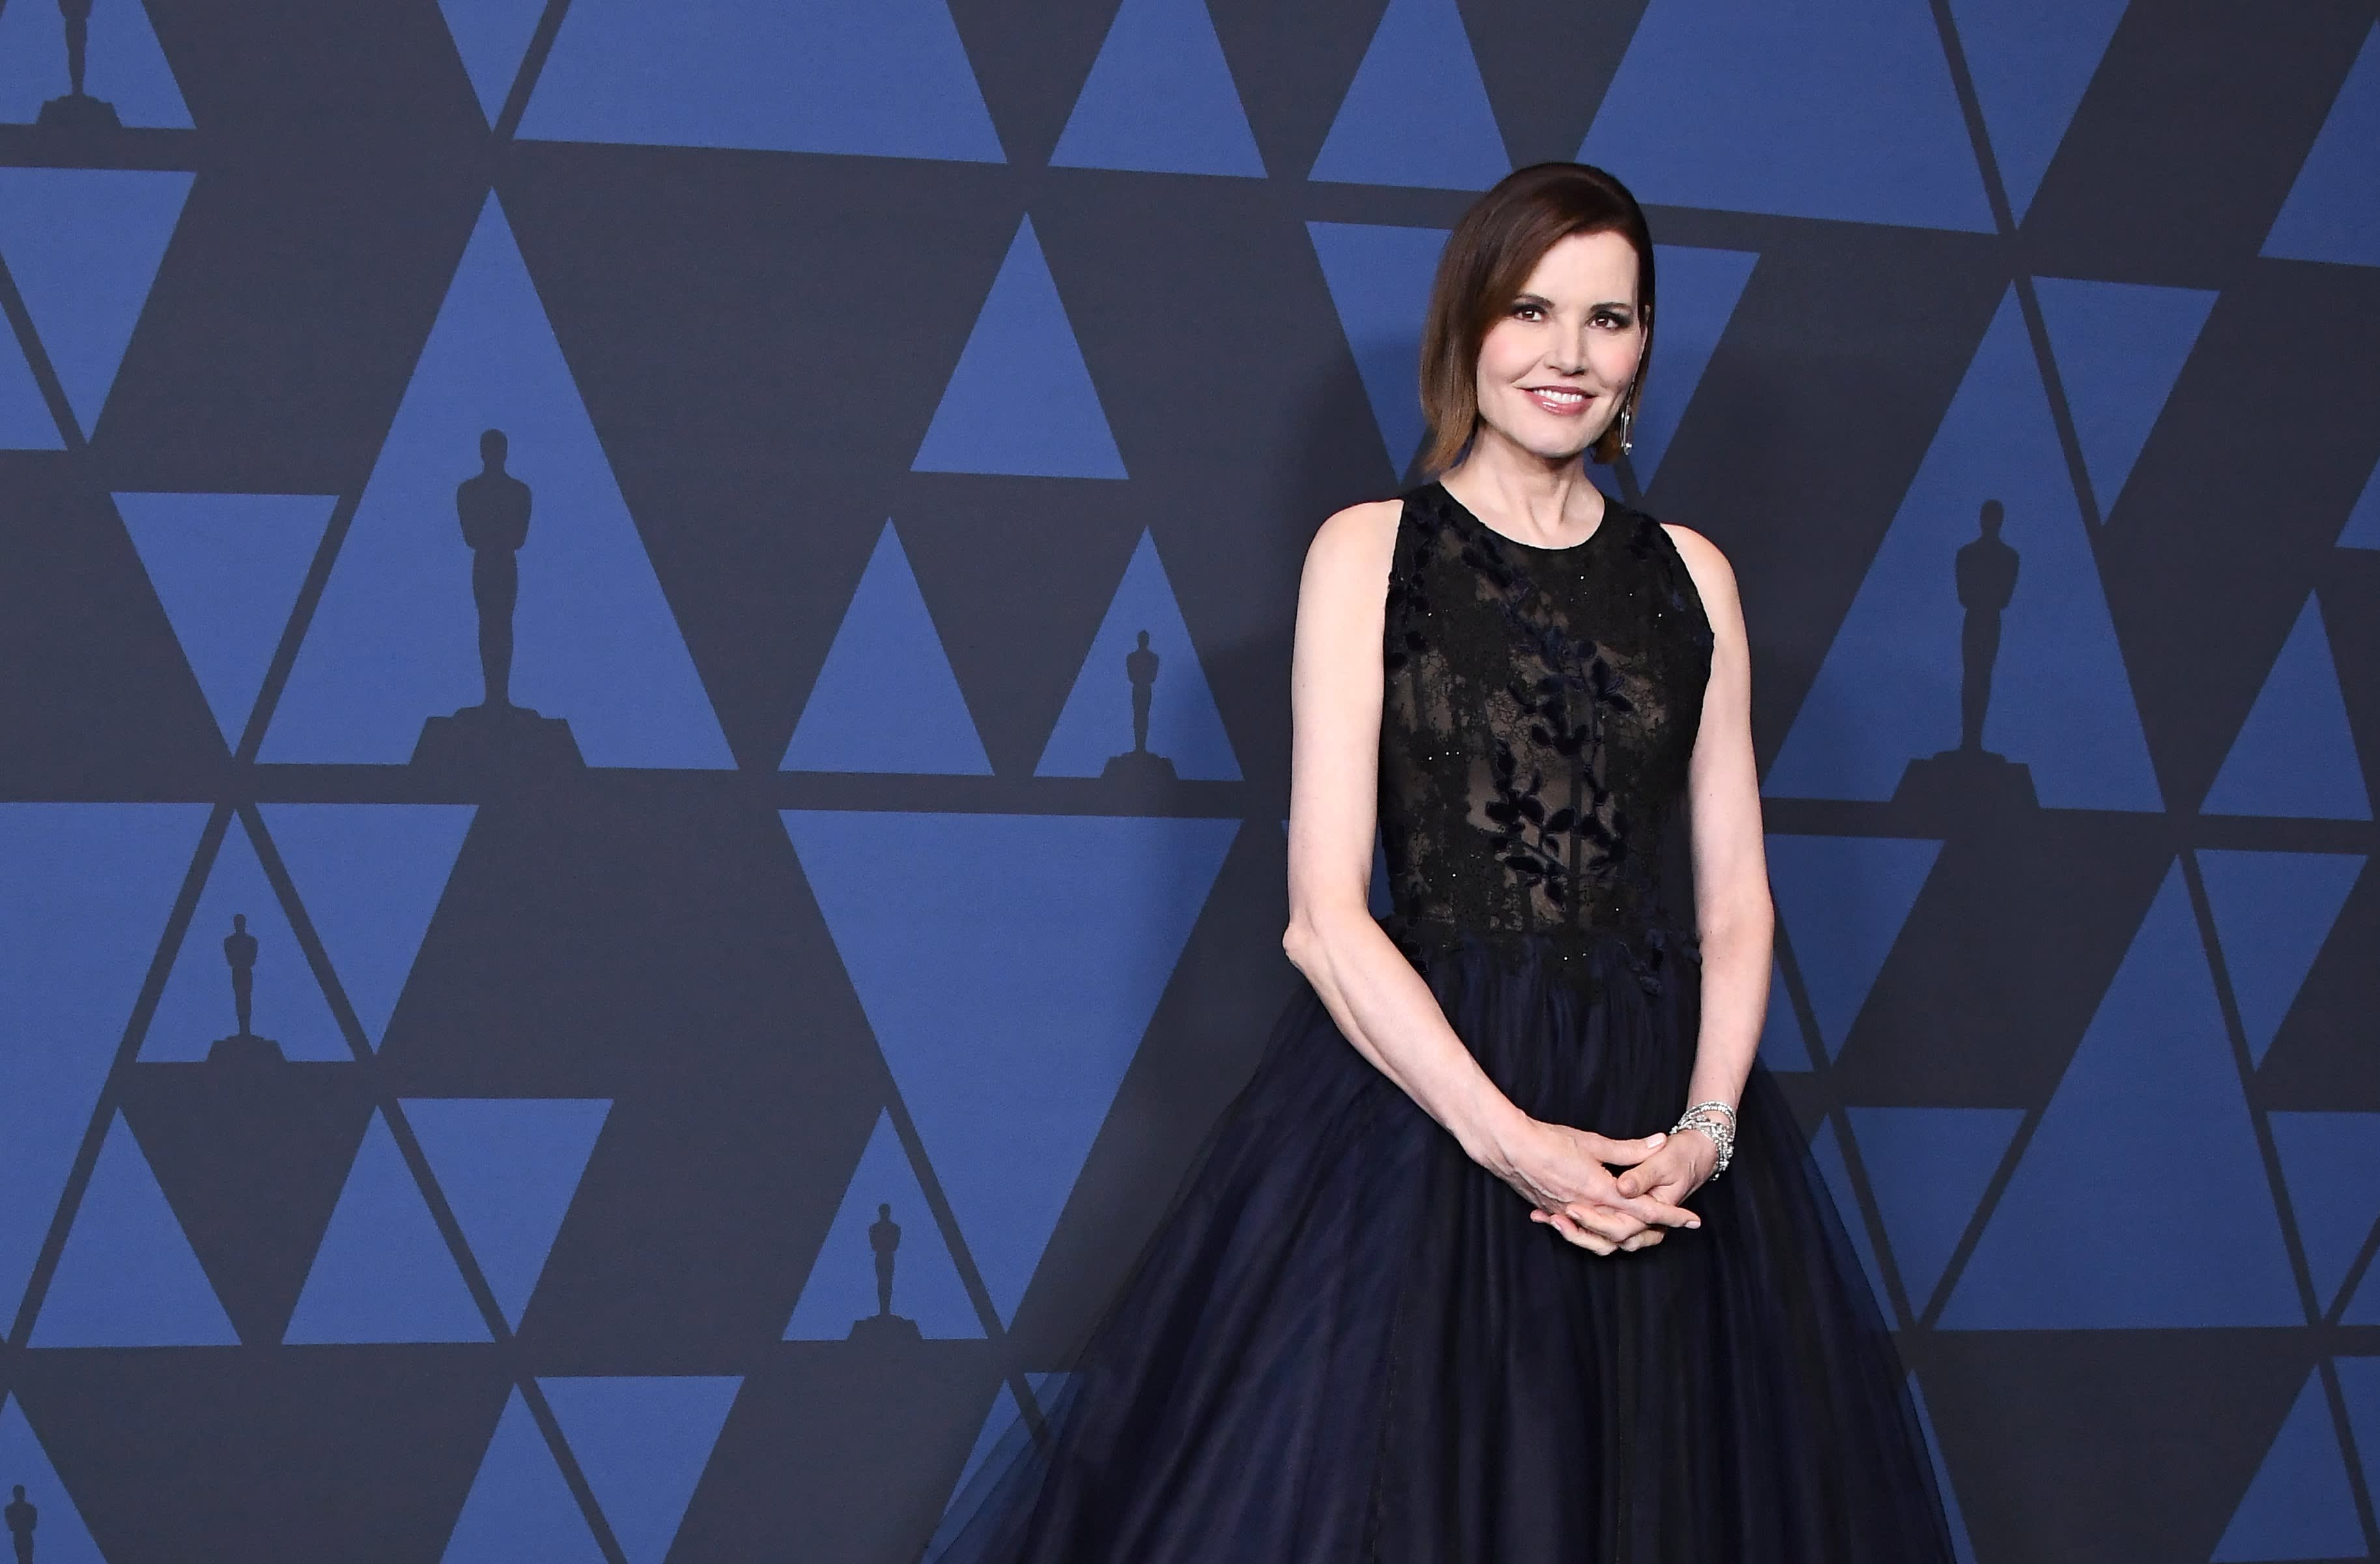 Geena Davis wins honorary Oscar for fighting onscreen gender bias